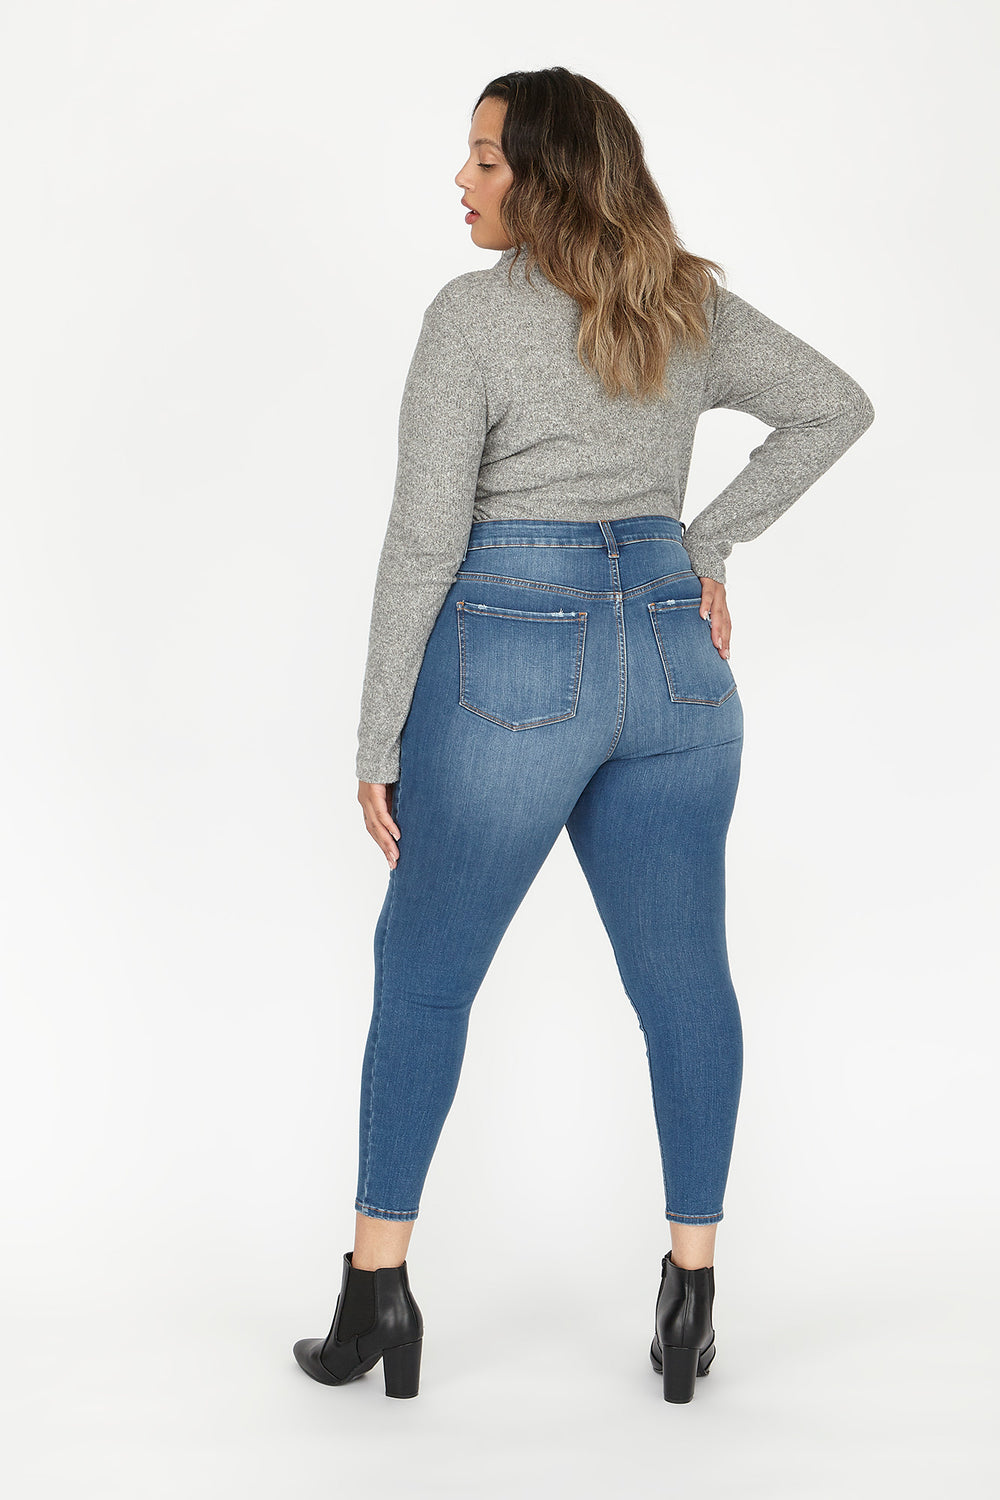 Plus Size High-Rise Distressed Patched Skinny Jean Medium Blue